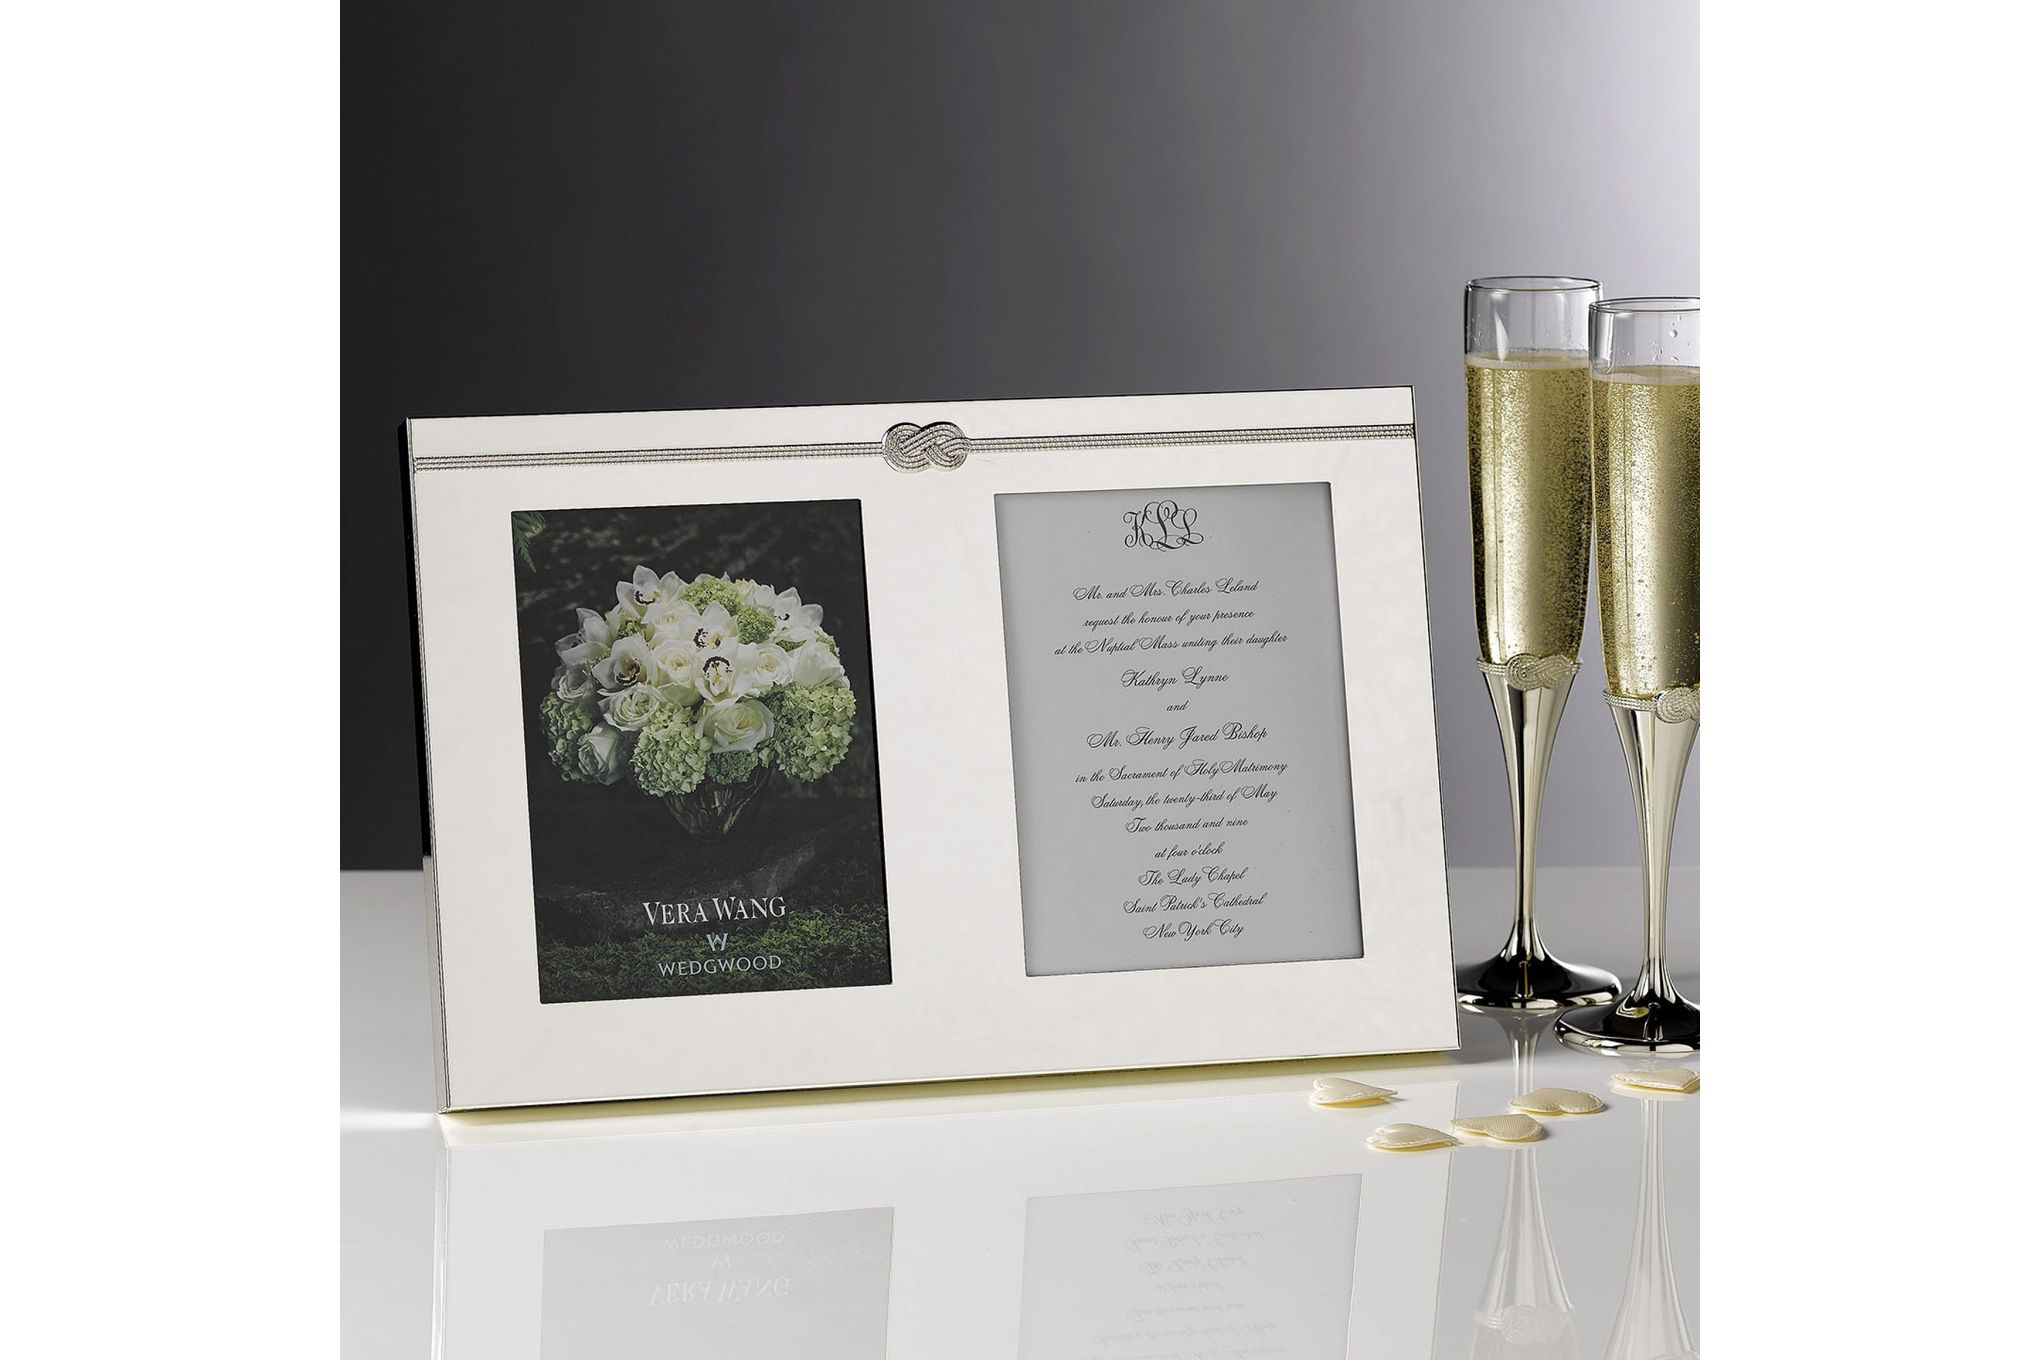 Vera Wang for Wedgwood Gifts & Accessories Double Invitation Frame Infinity thumb 3